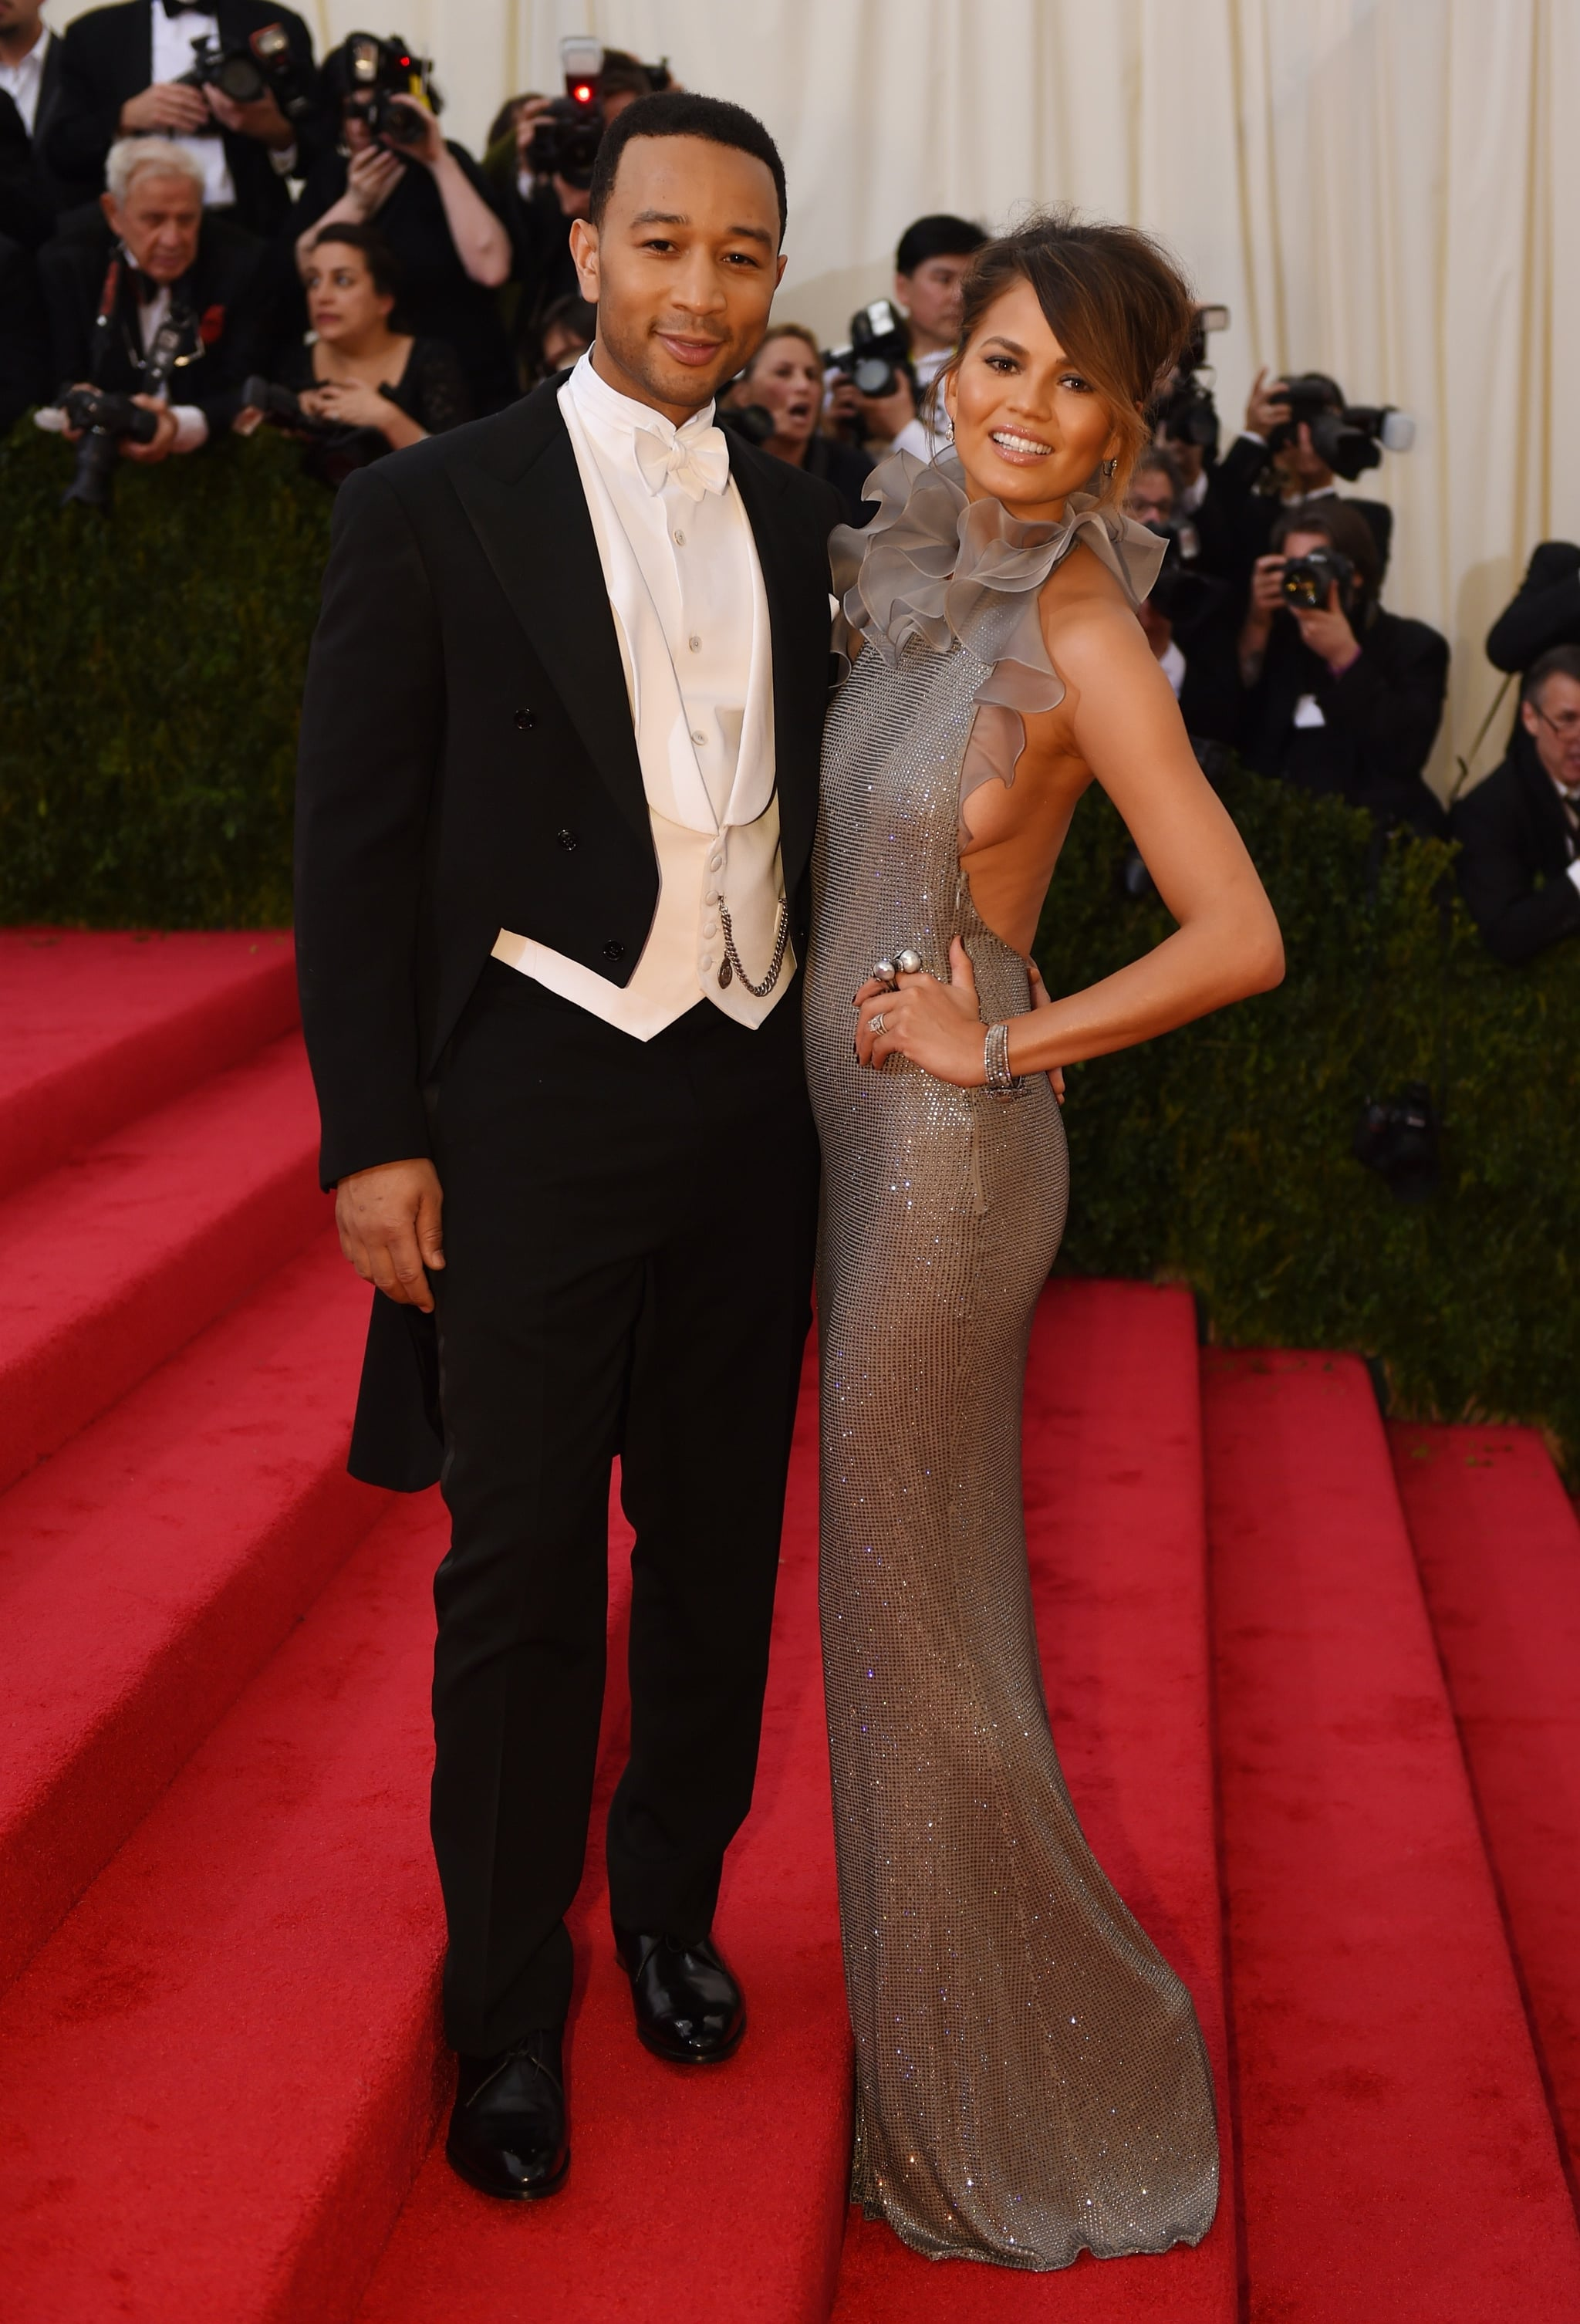 John Legend and Chrissy Teigen took a break midway up the grand staircase.